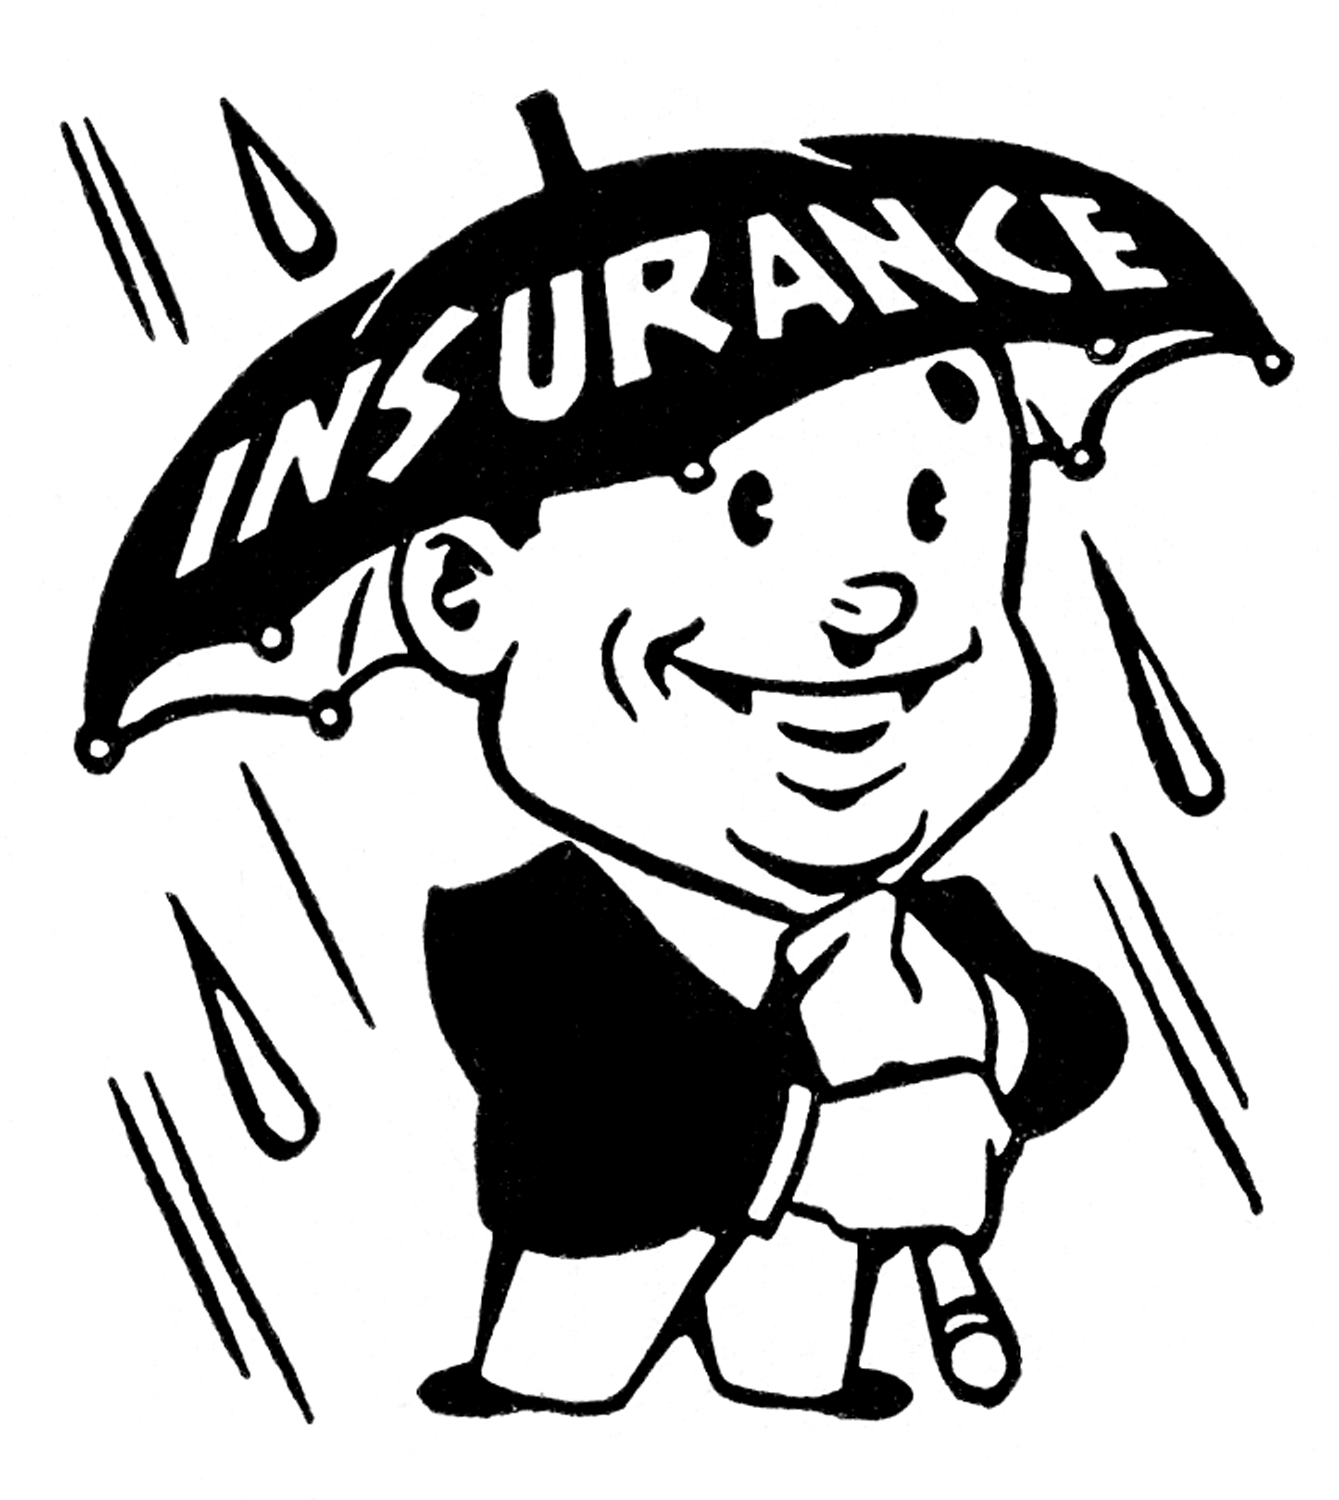 Car Insurance Salesman Image Graphicsfairy1